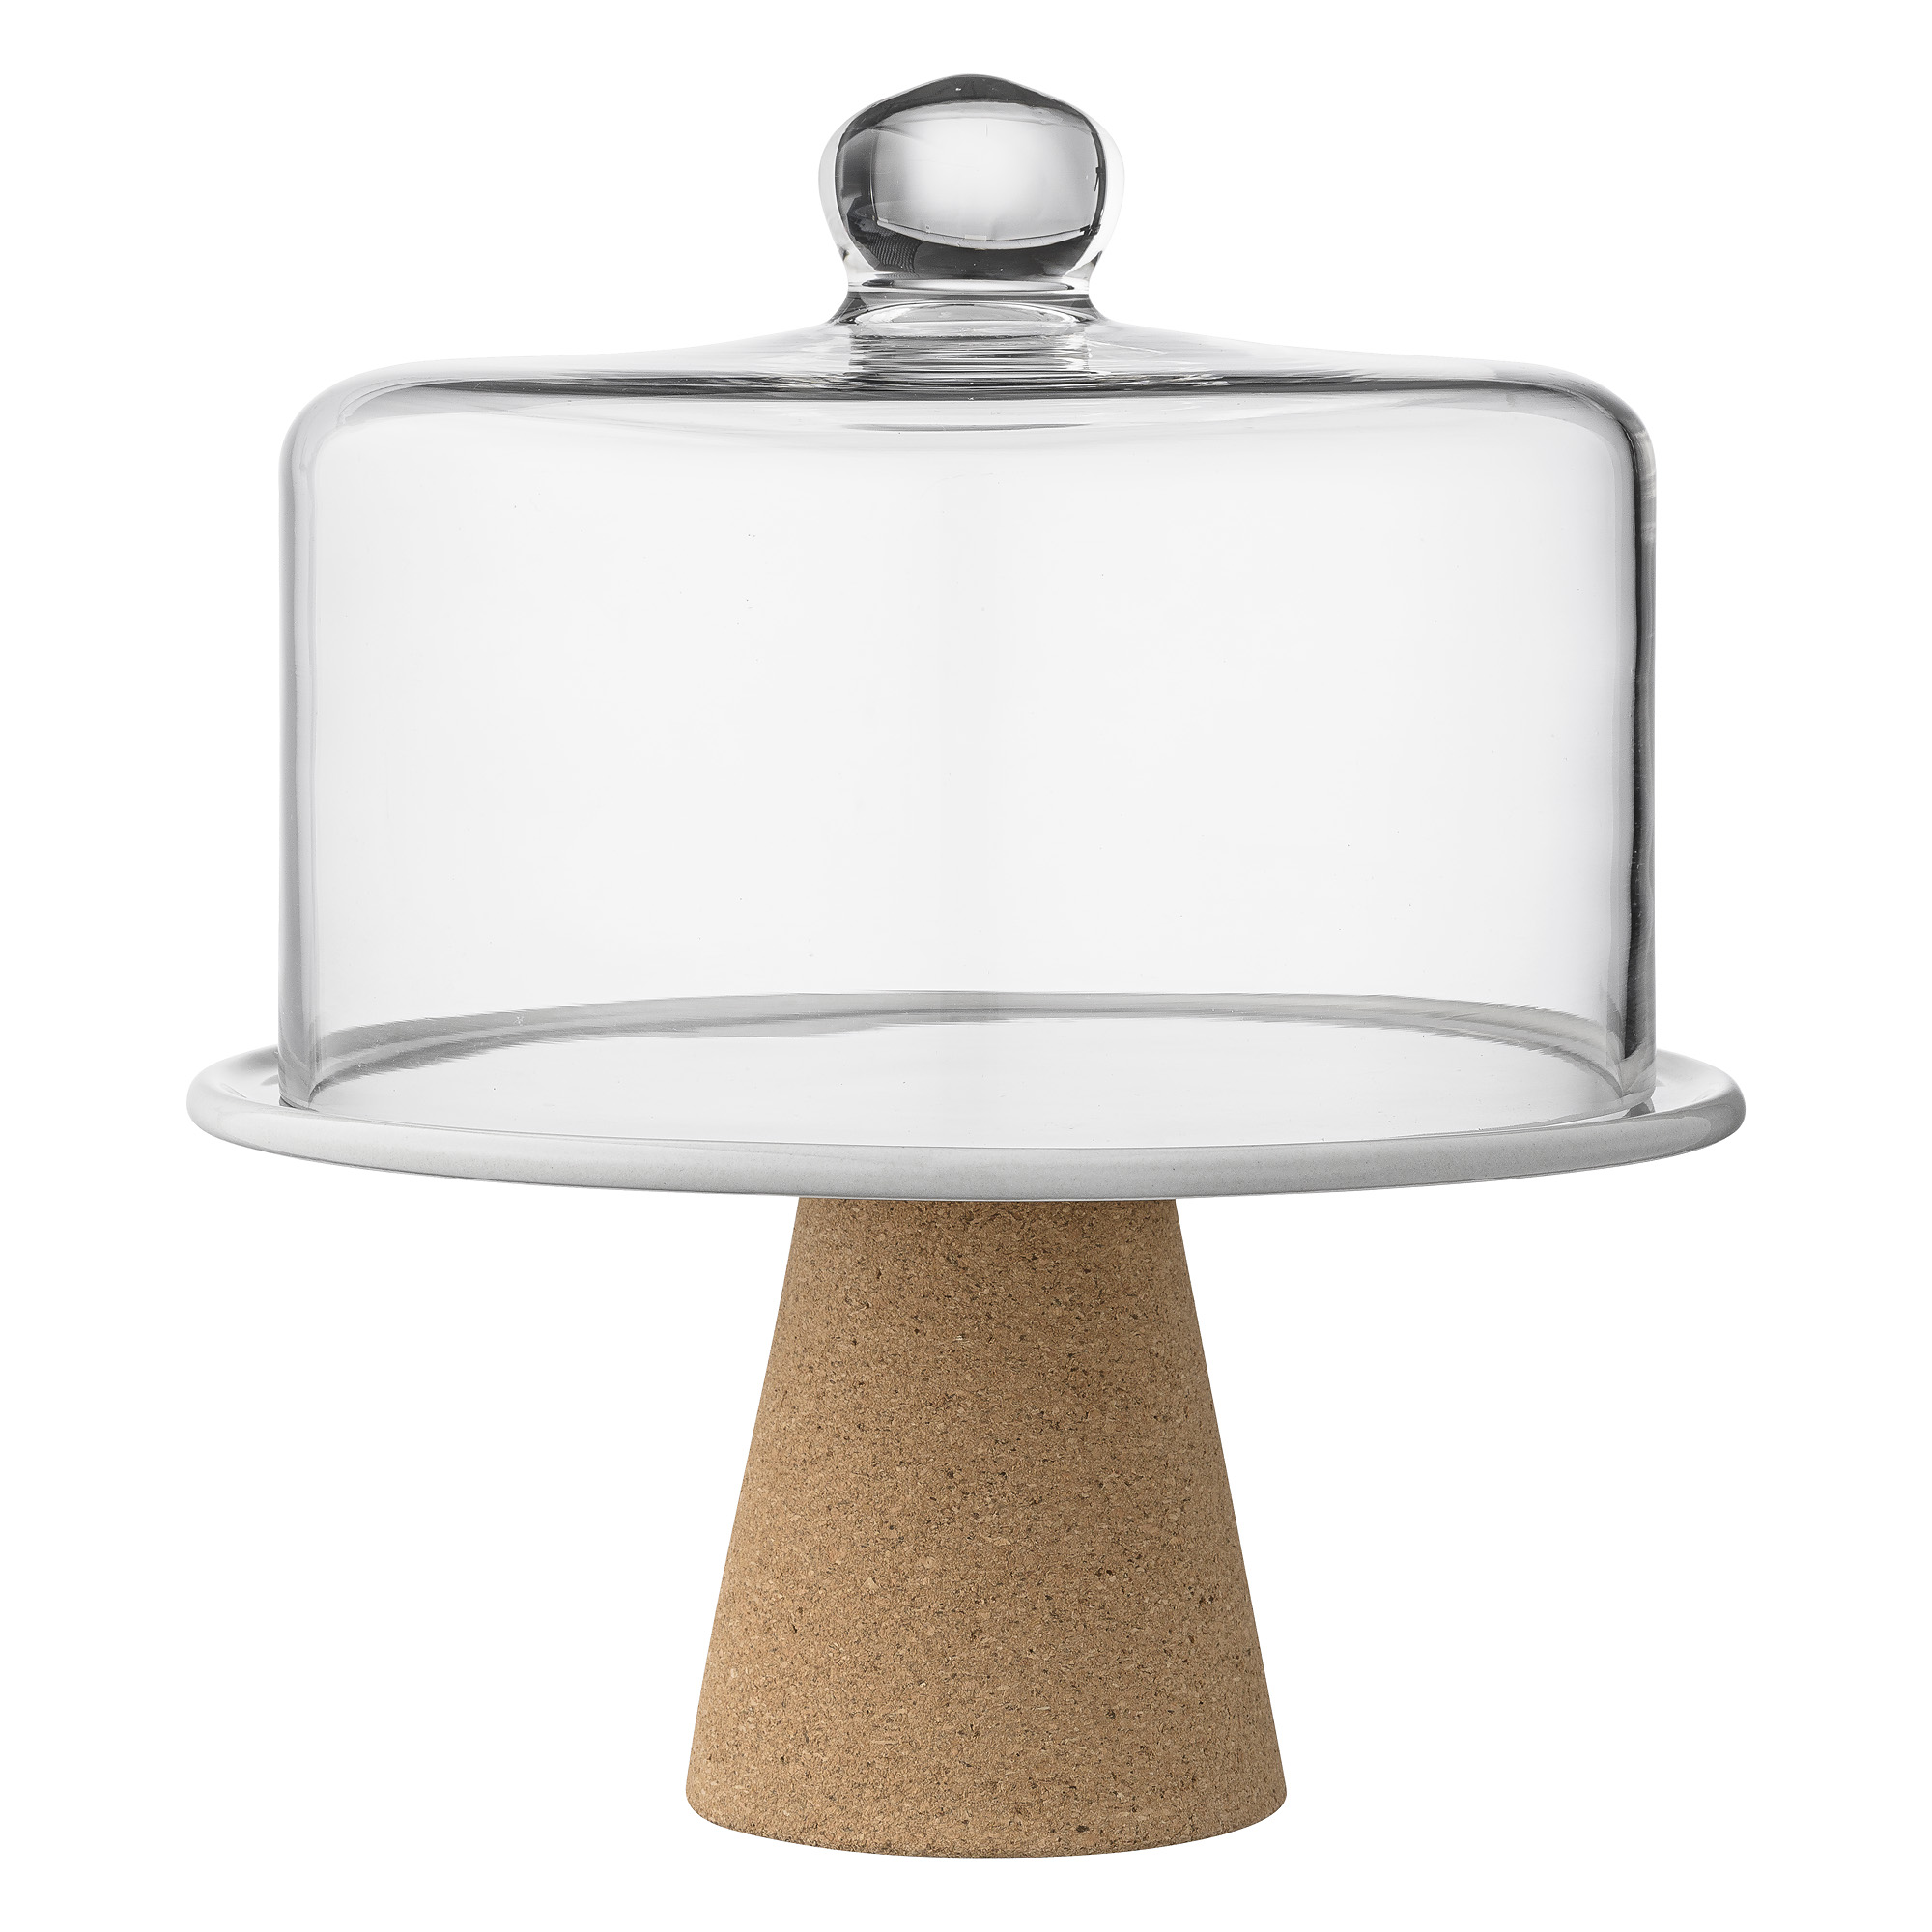 Image of   Cakestand, grey, glass